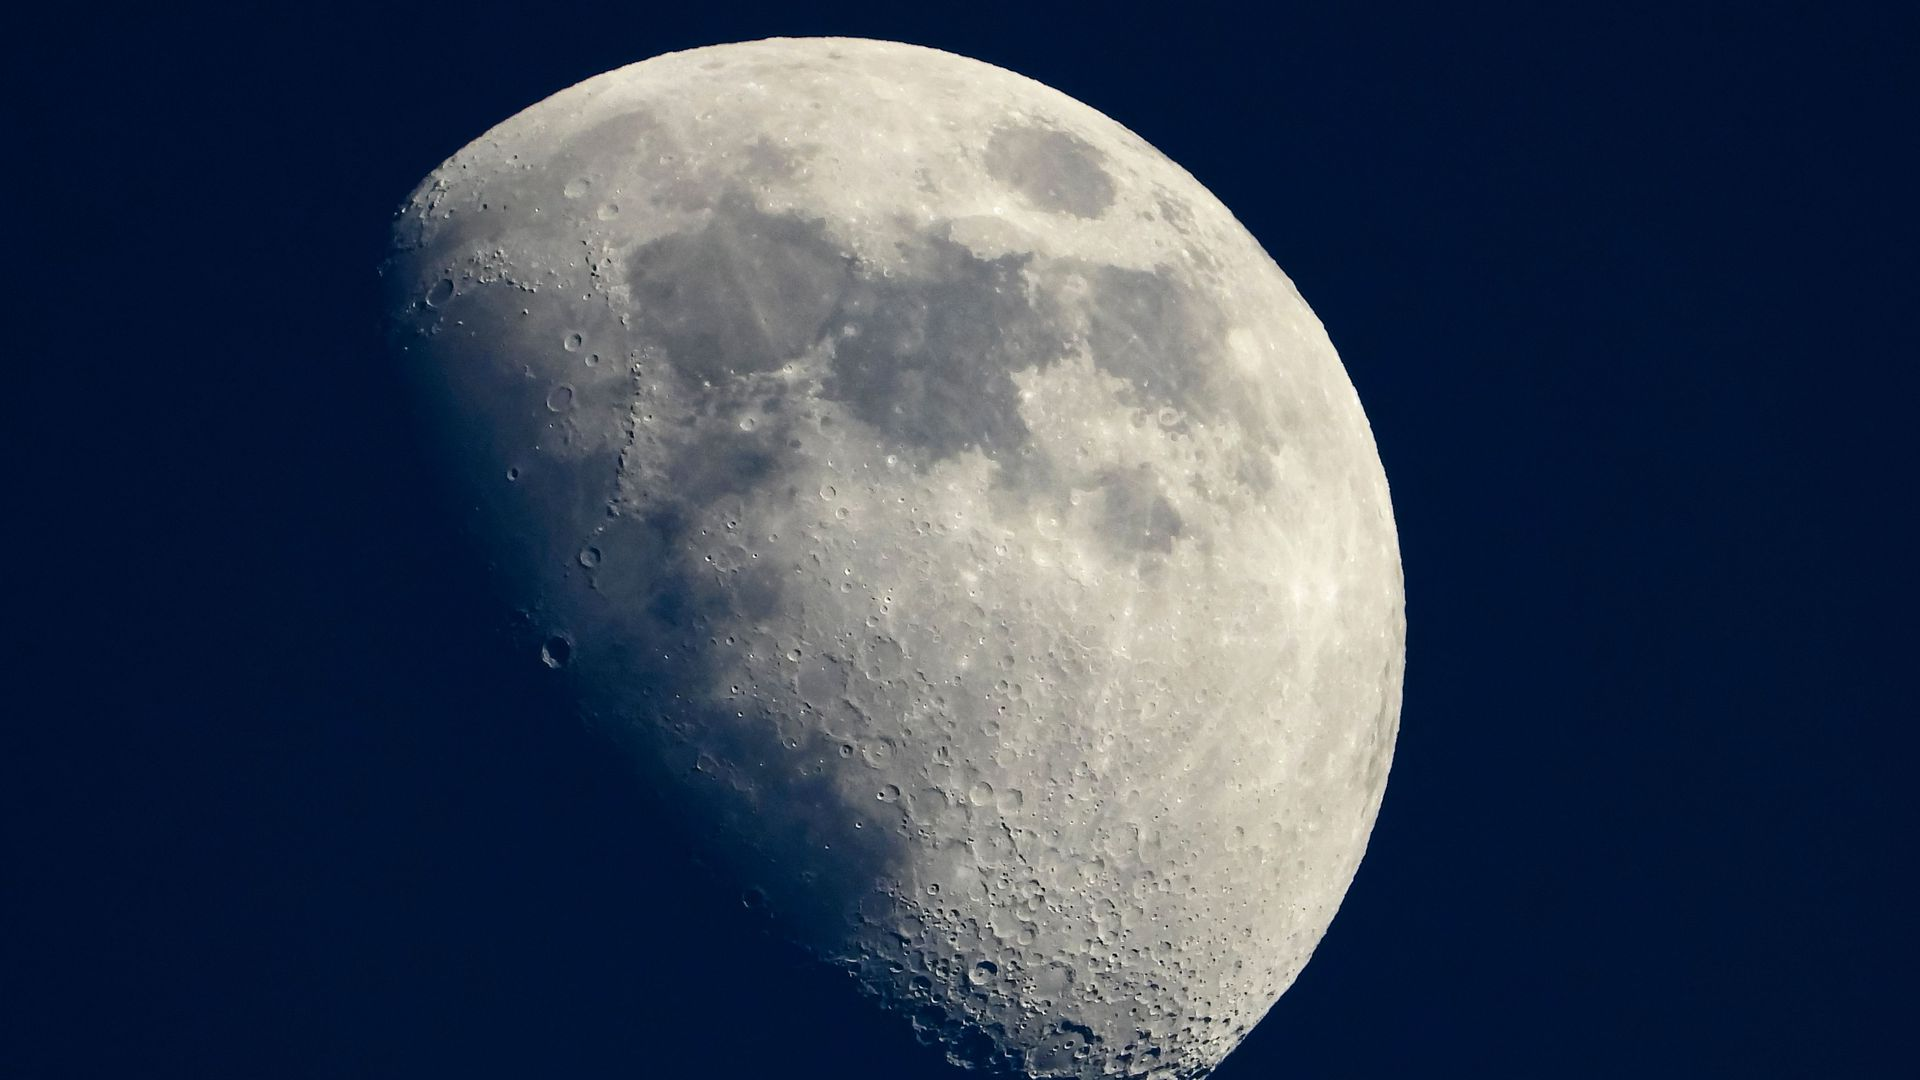 In this image, the moon is shown in a quarter full phase.